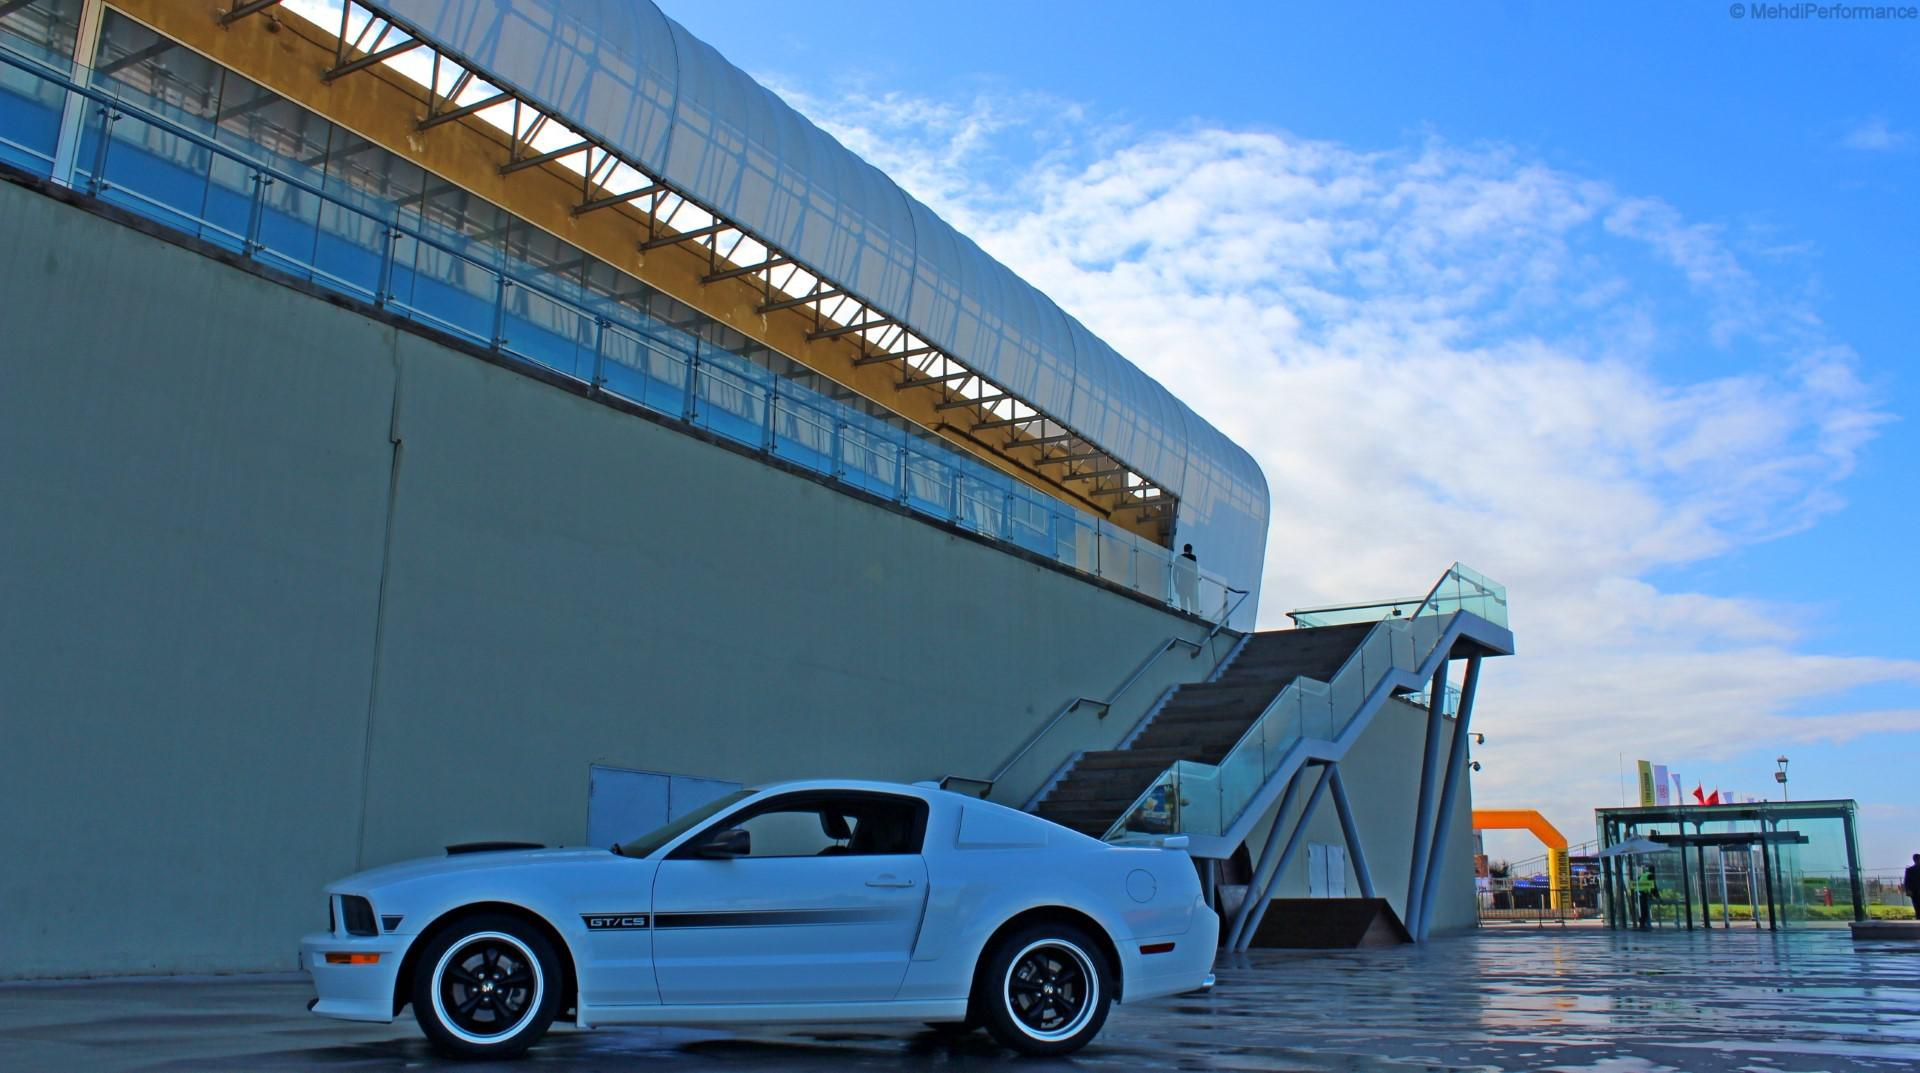 serie-speciale-au-maroc-ford-mustang-gt-v8-4-6l-california-special-manuelle-458-32.jpg